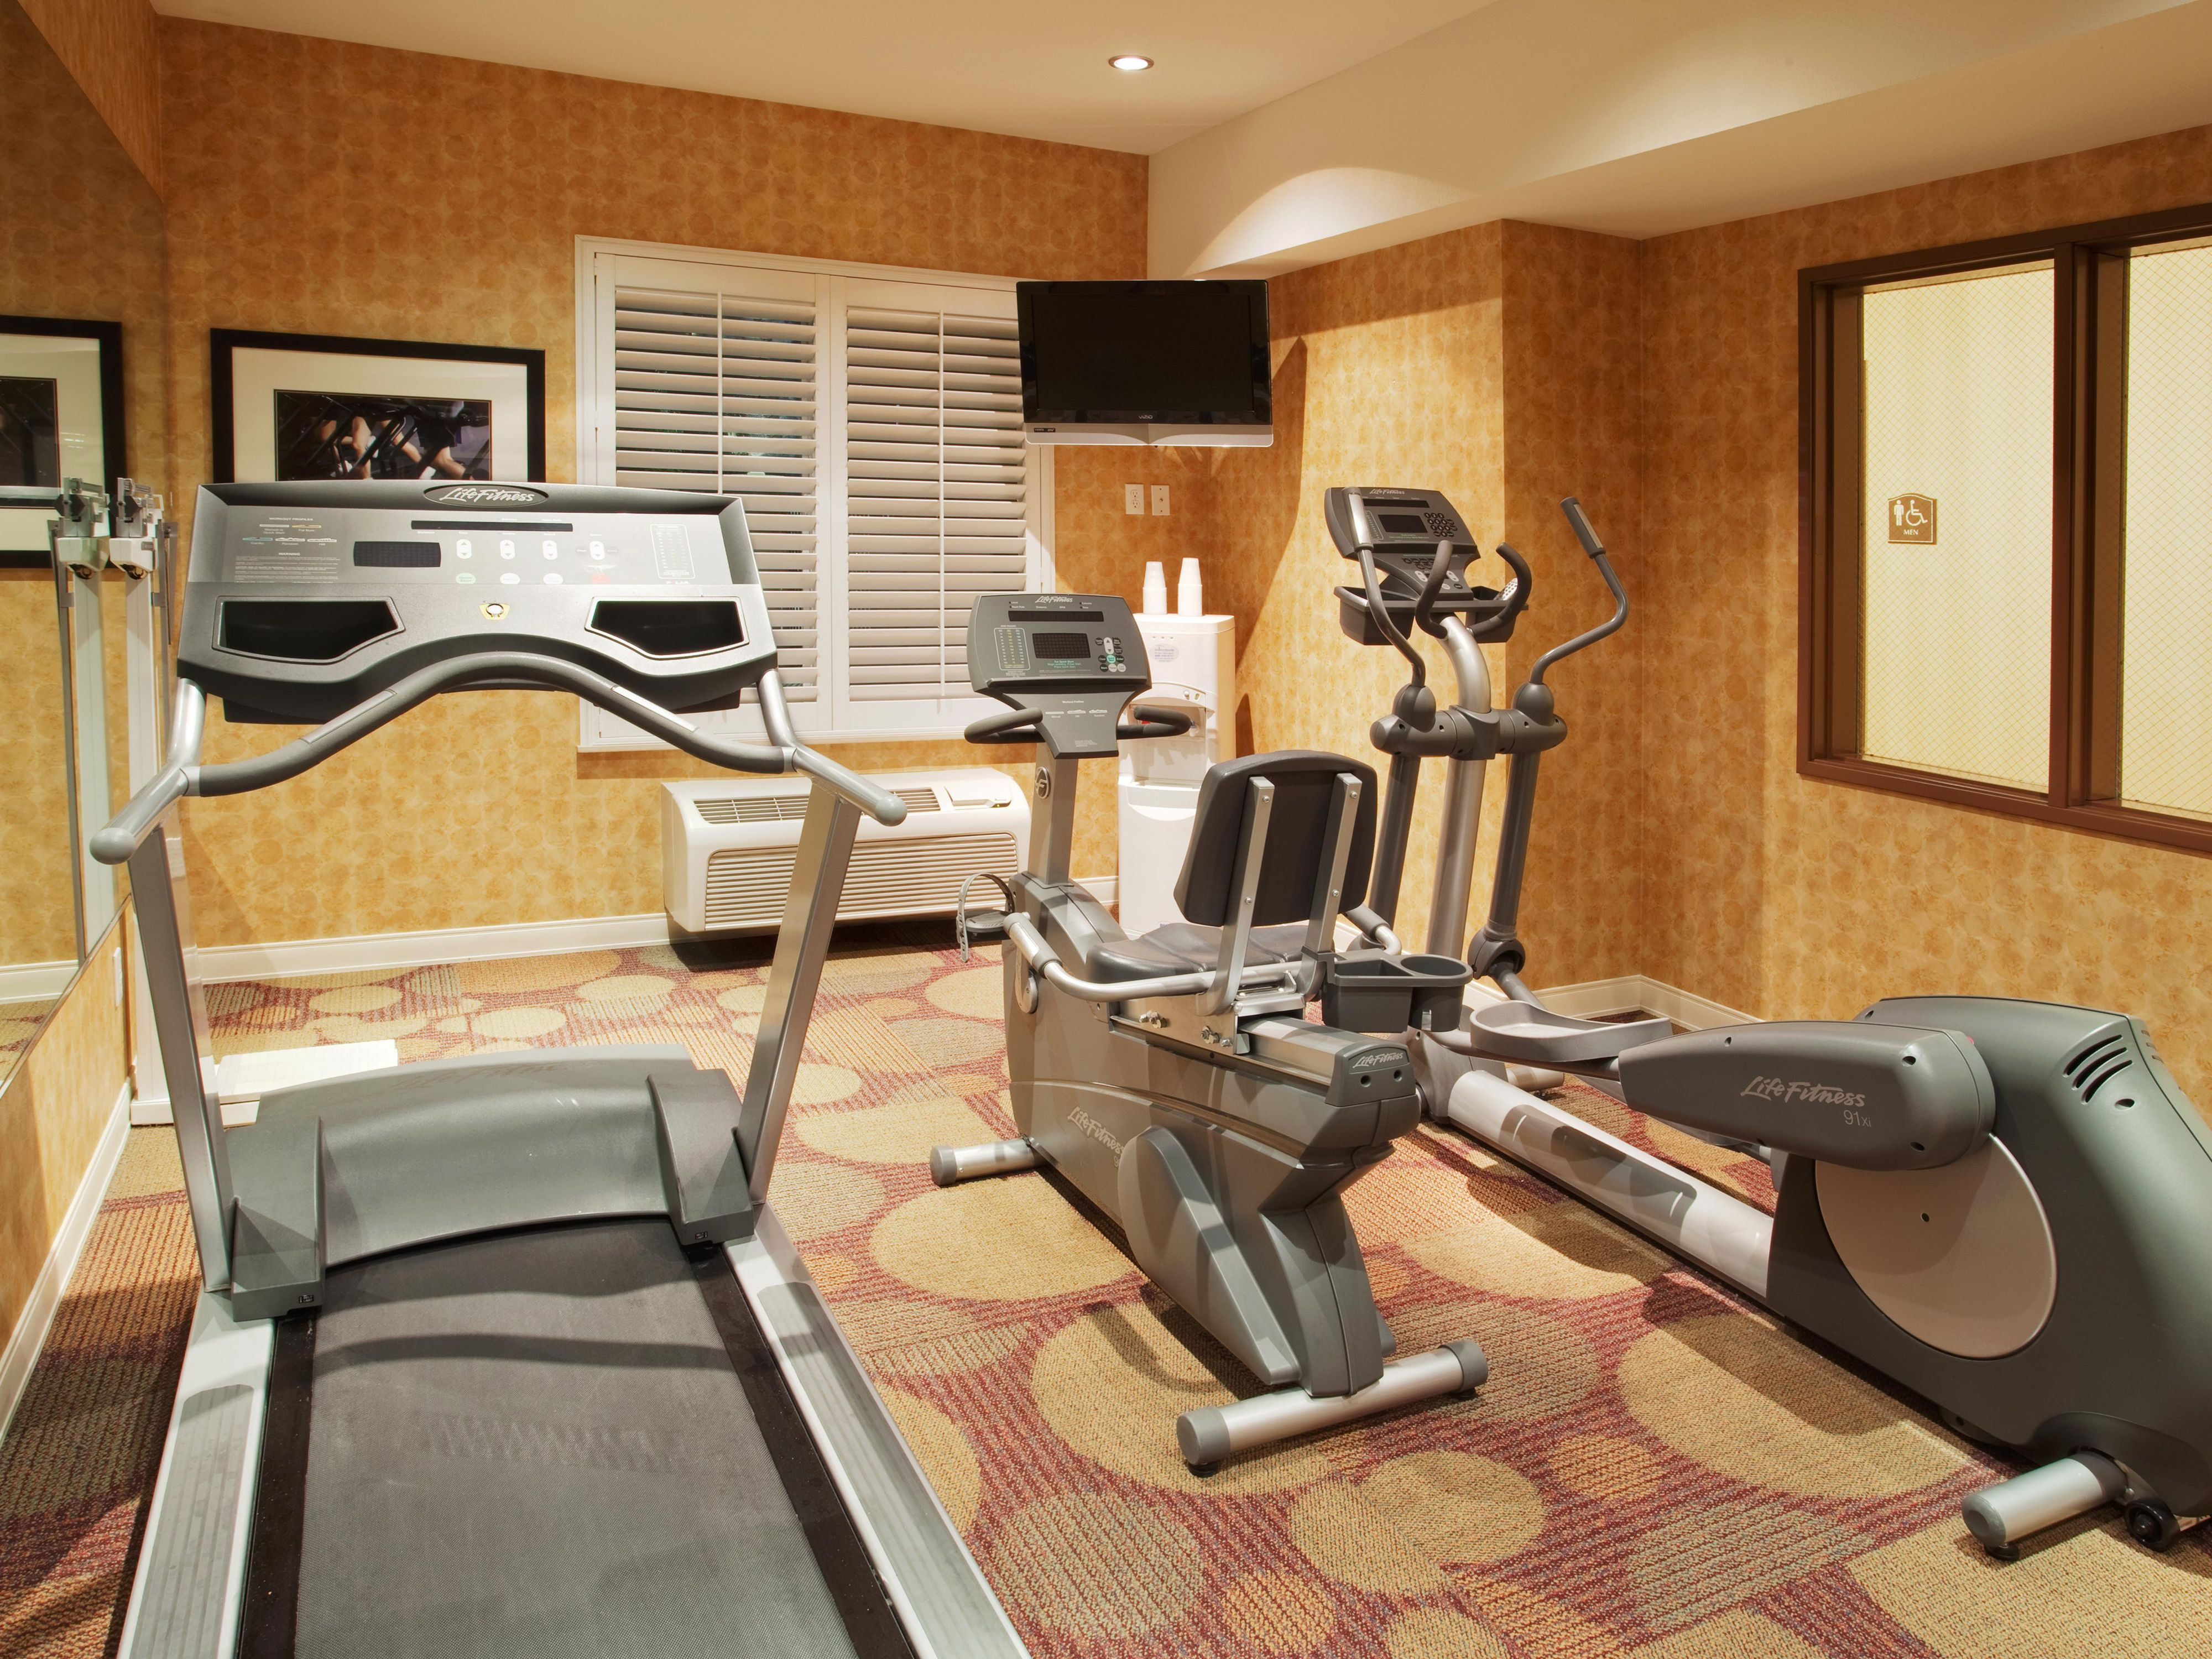 Choose from 3 cardio machines to fulfill your workout